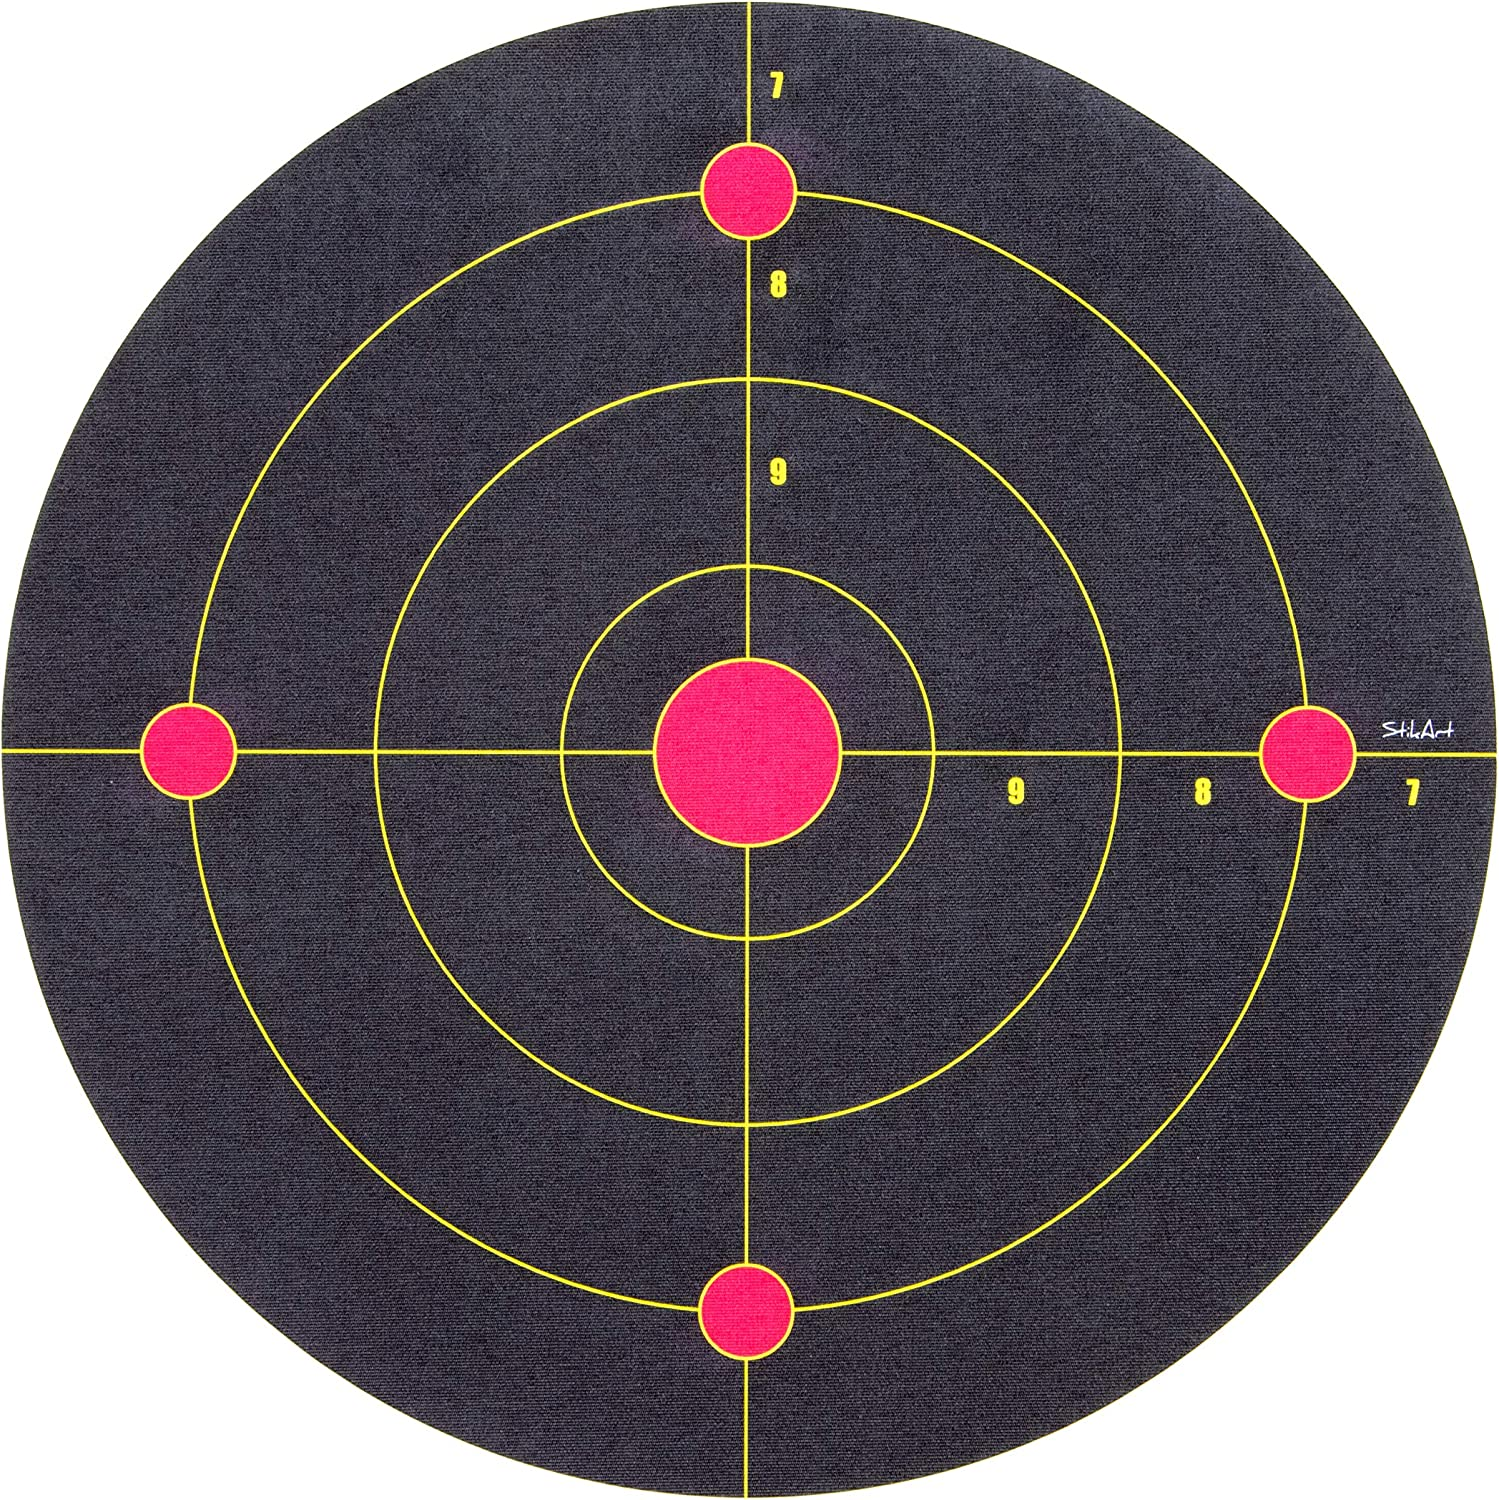 StikArt Shooting Target Wall Decal for Indoor Practice with Nerf Guns & Foam Blasters (Range Style)